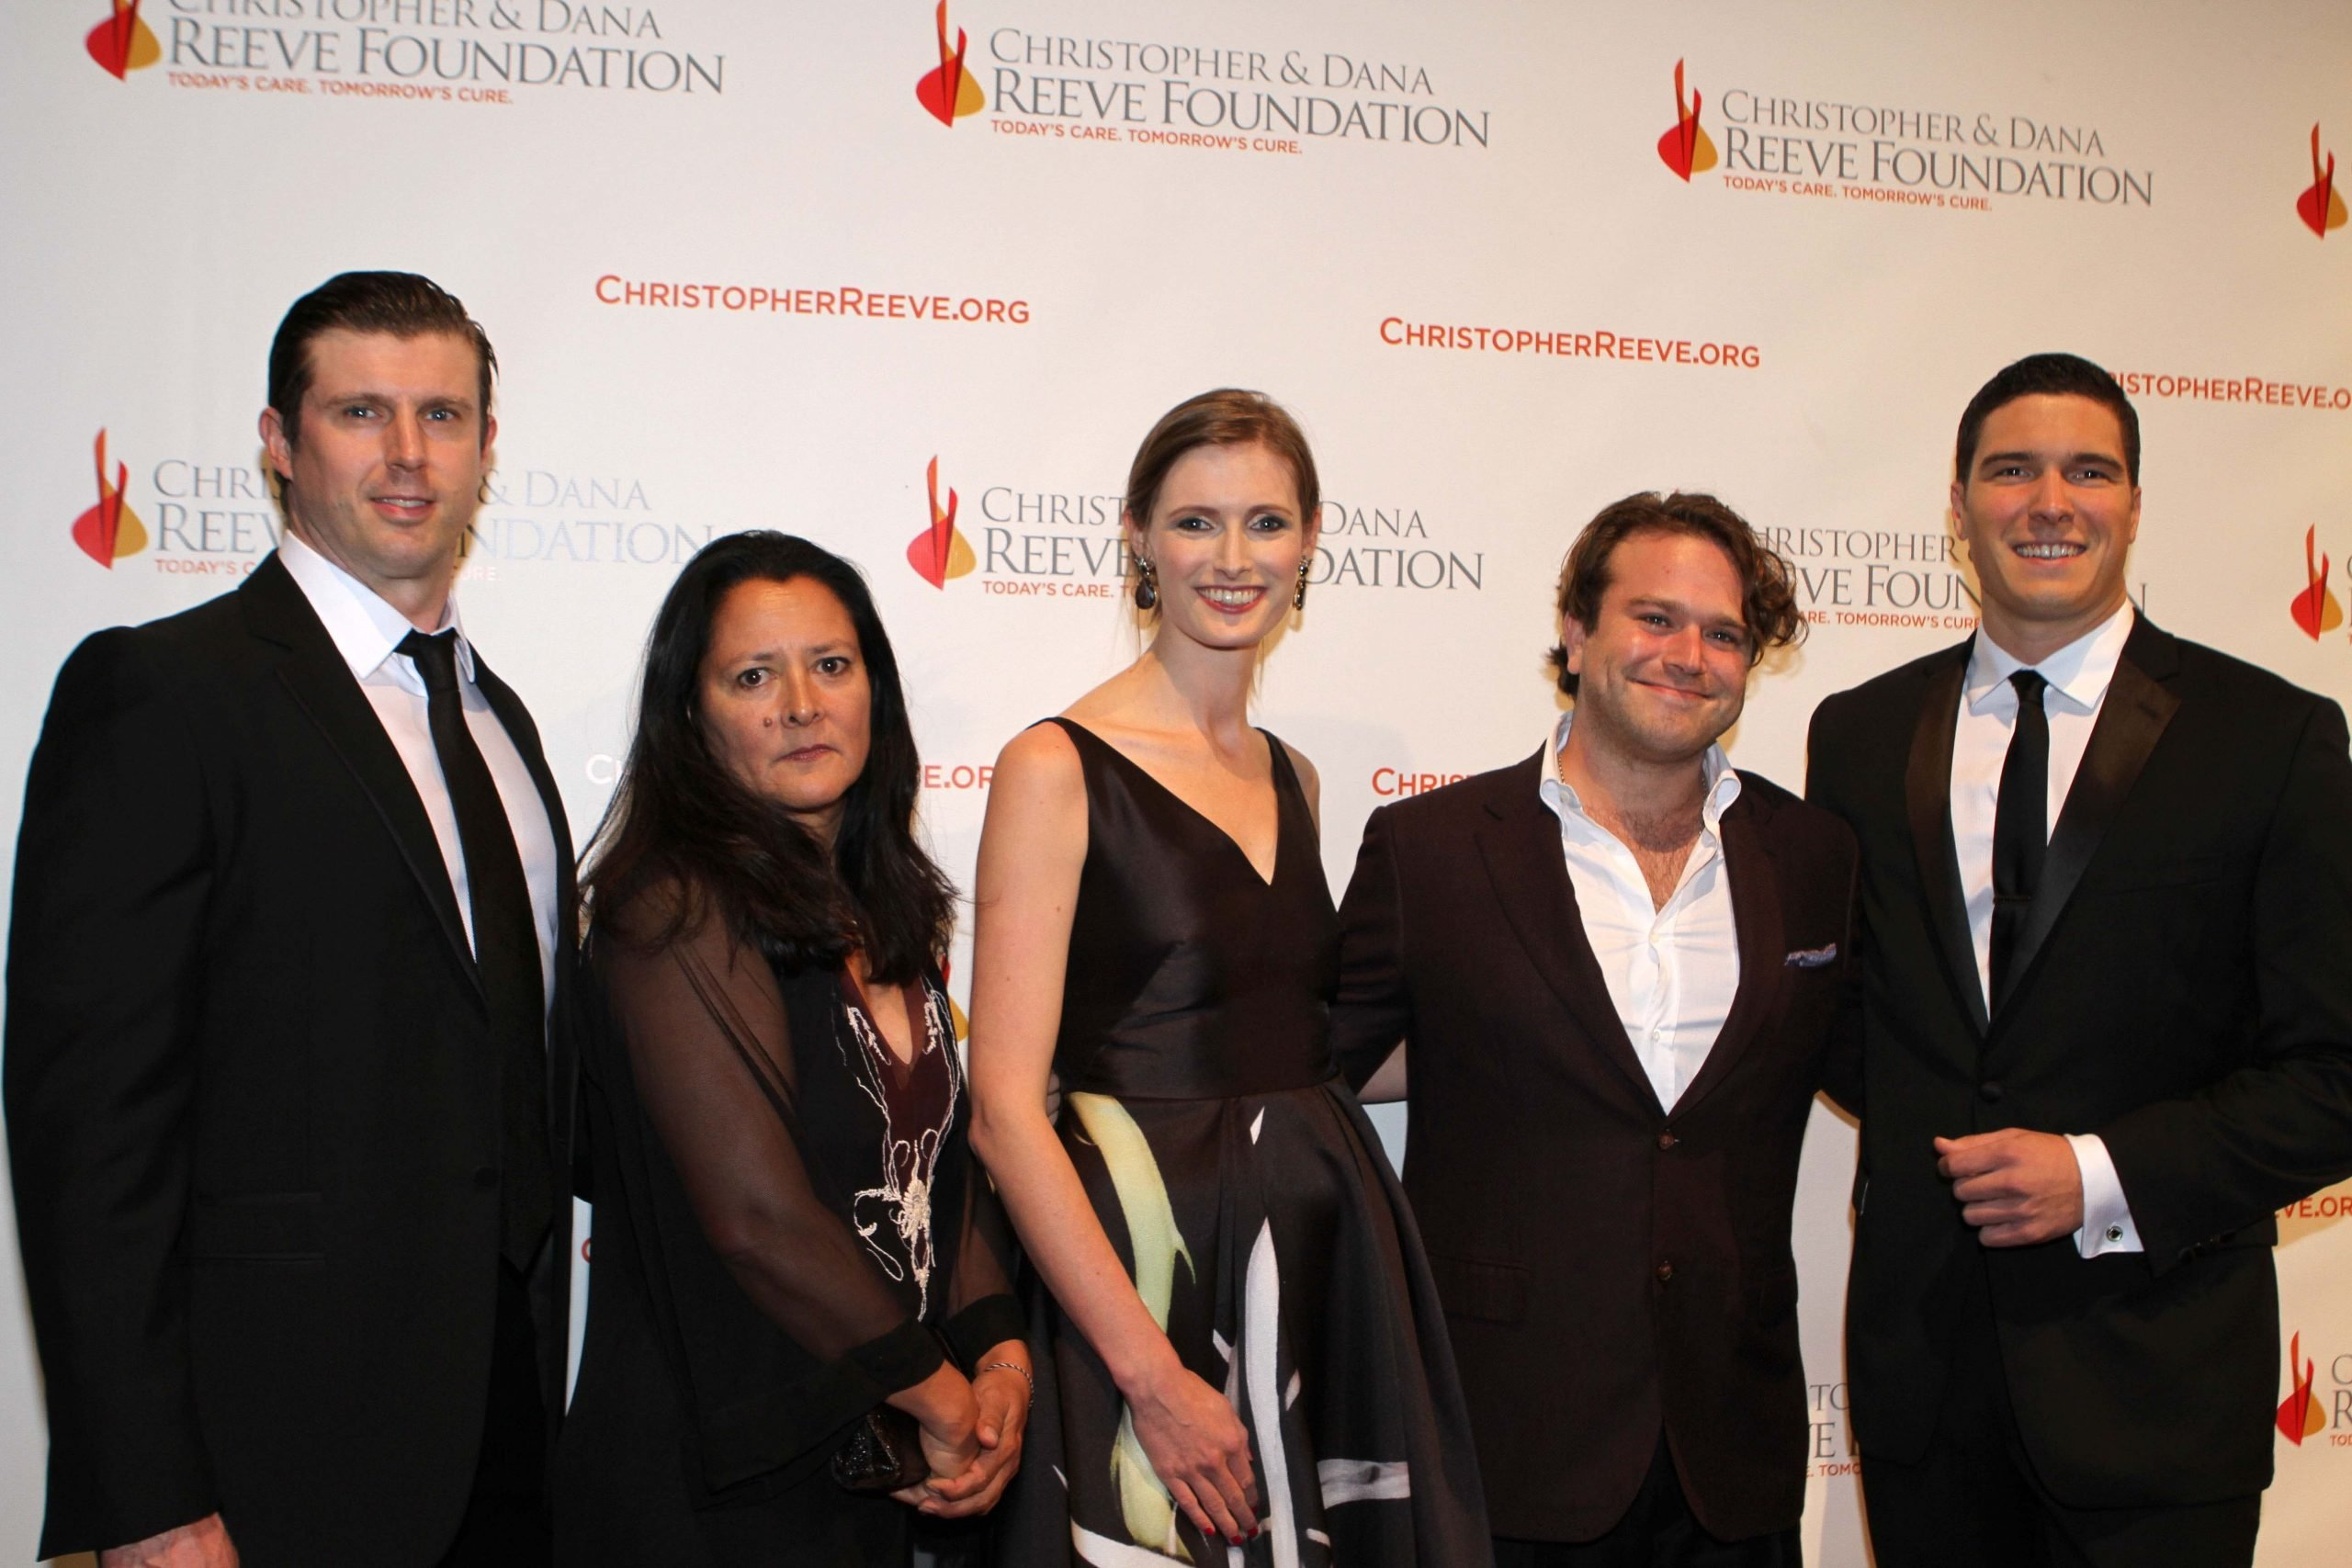 Zak Williams, pictured second from the right, is a fierce advocate for mental health discussions